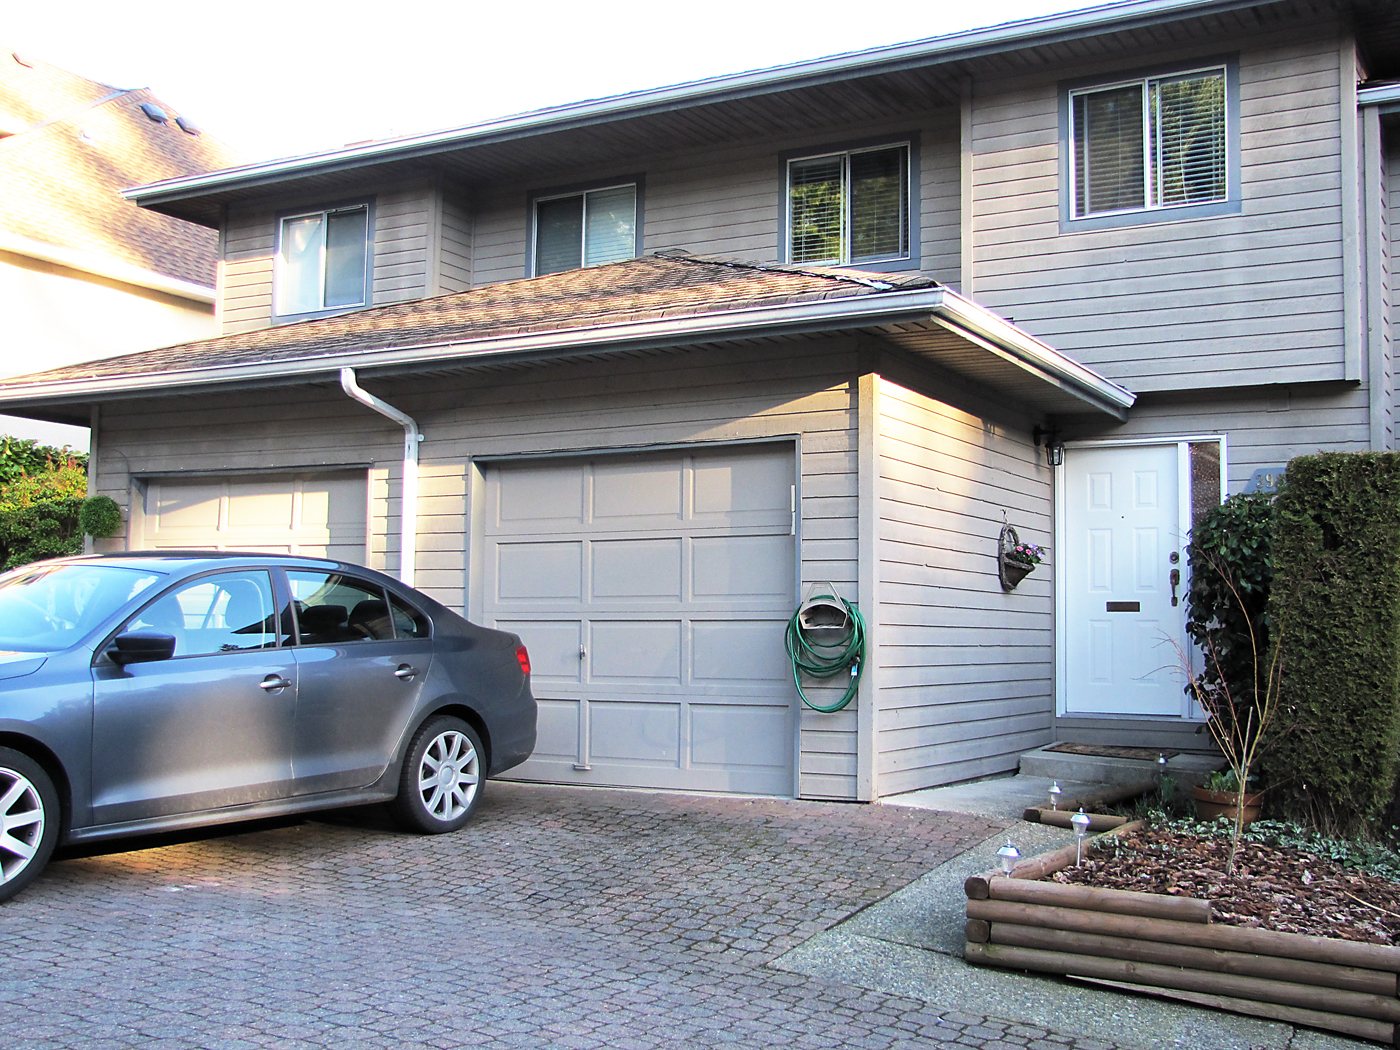 Indian River Townhouse for sale: HIGHGATE TERRACE, North Vancouver, 3 bedroom, 1,733 sq.ft., David Valente Prudential Sussex Realty